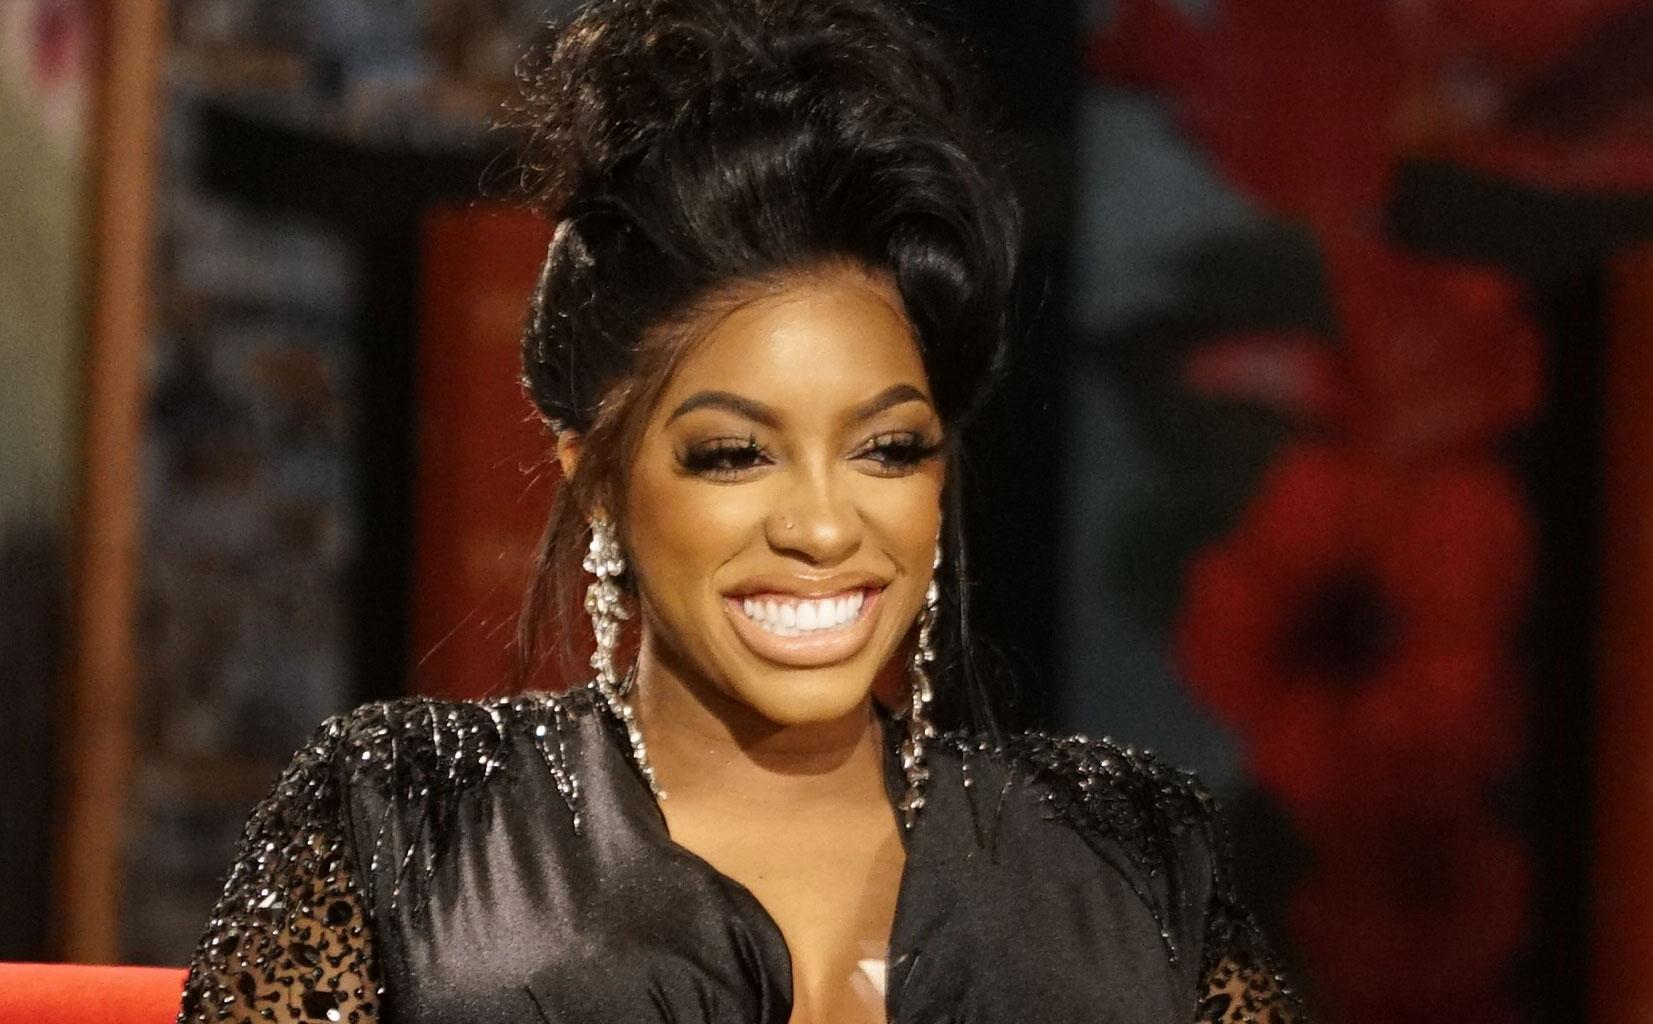 Porsha Williams Flaunts Hourglass Figure In An Outfit From Her Own Clothing Line - She Sparks A Debate About Her Snapback